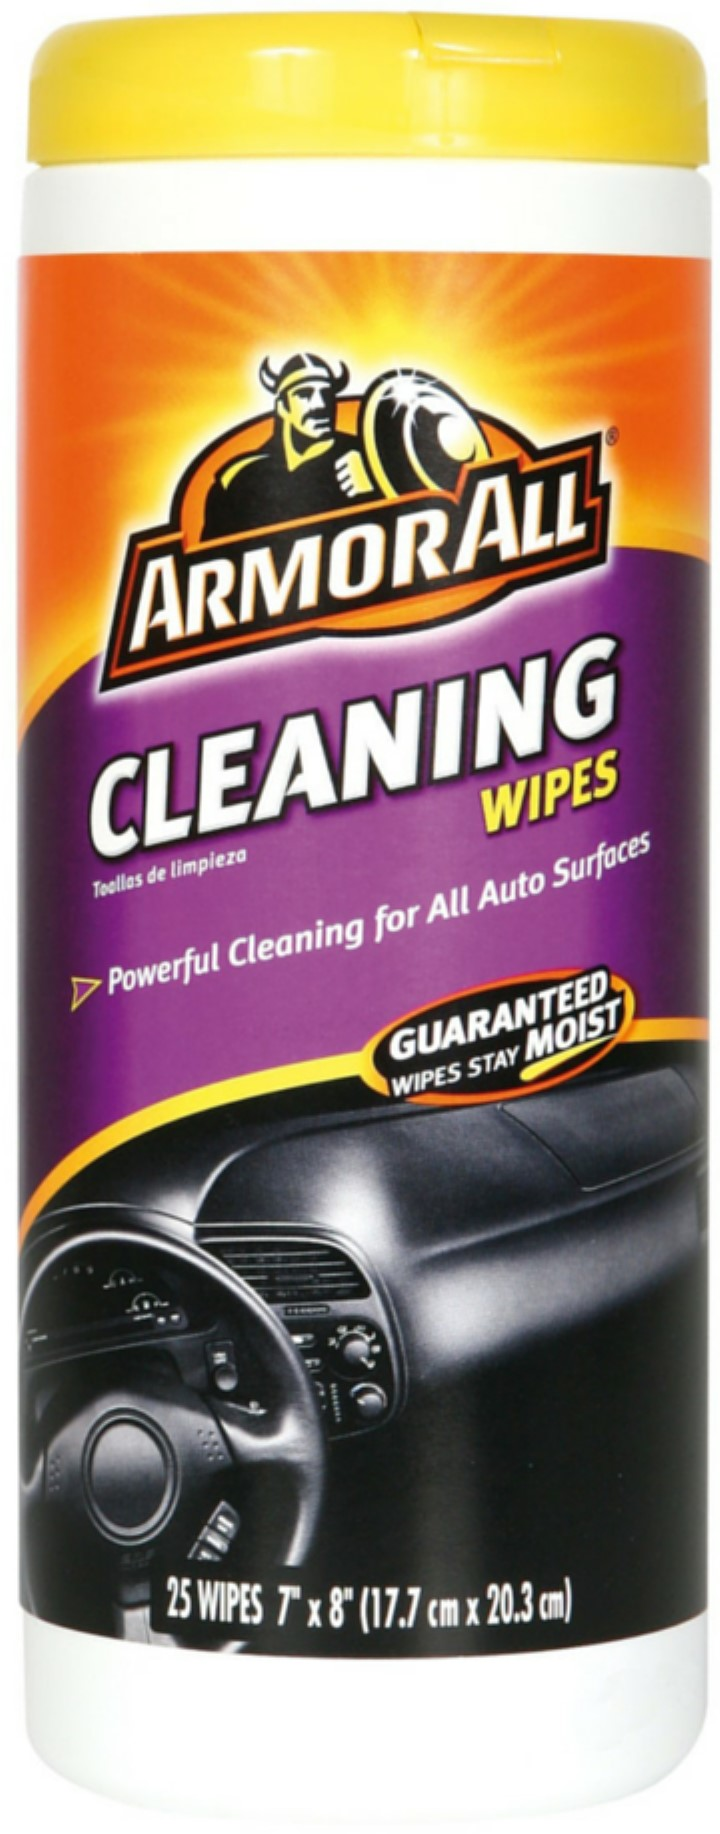 Armor All Cleaning Wipes Canister 25 Count Walmartcom